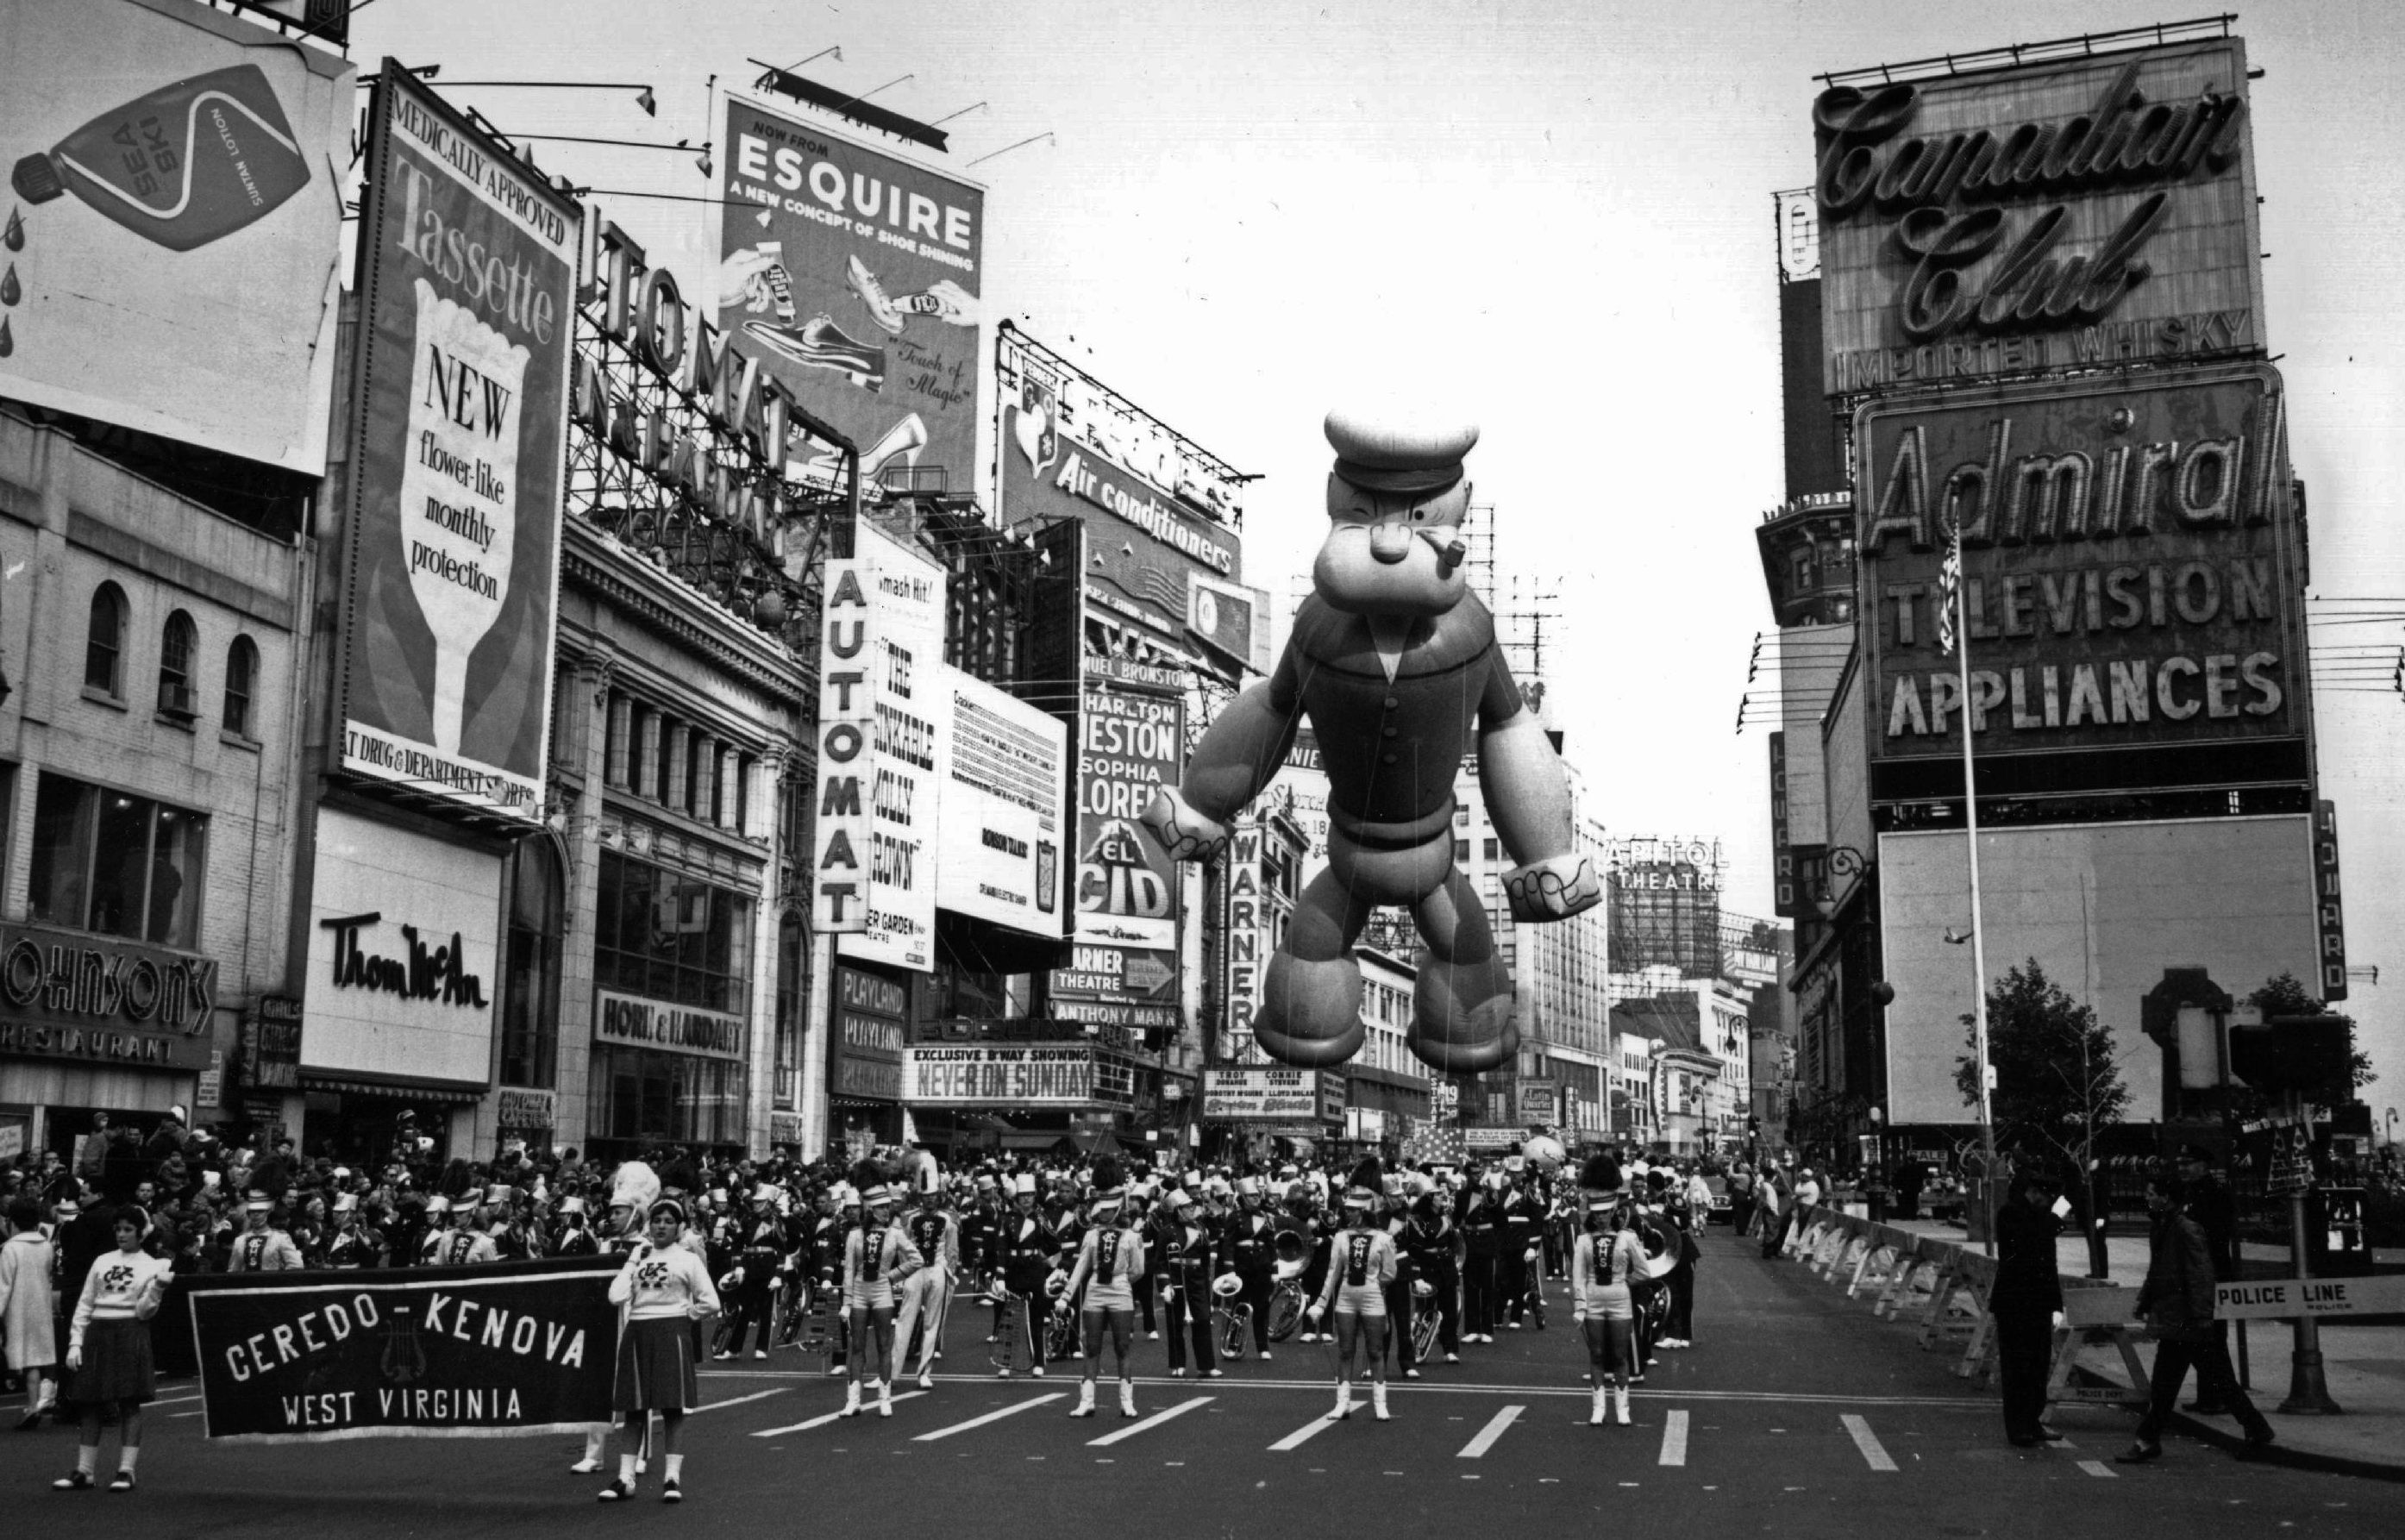 A Thanksgiving parade in New York. Floating above the